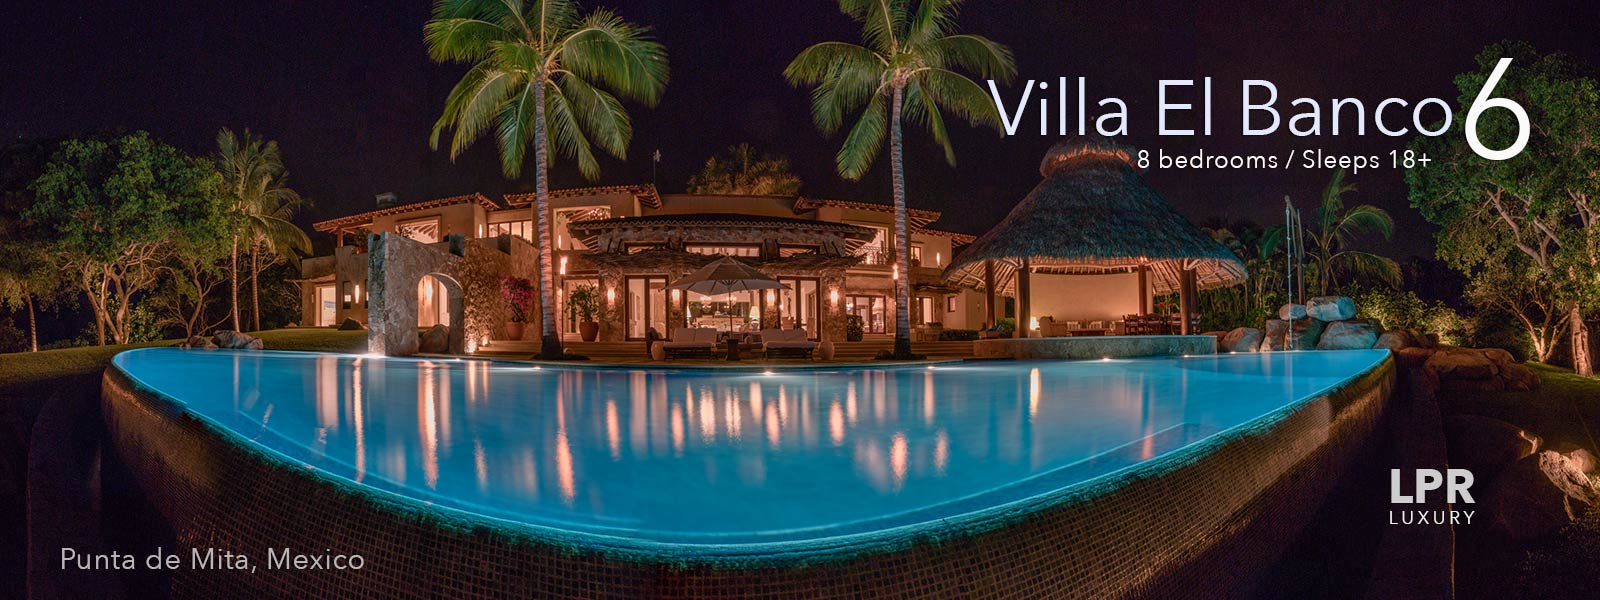 Villa El Banco 6 - Ultra Luxury Punta de Mita Real Estate and Vacation Rentals - Riviera Nayarit, Mexico